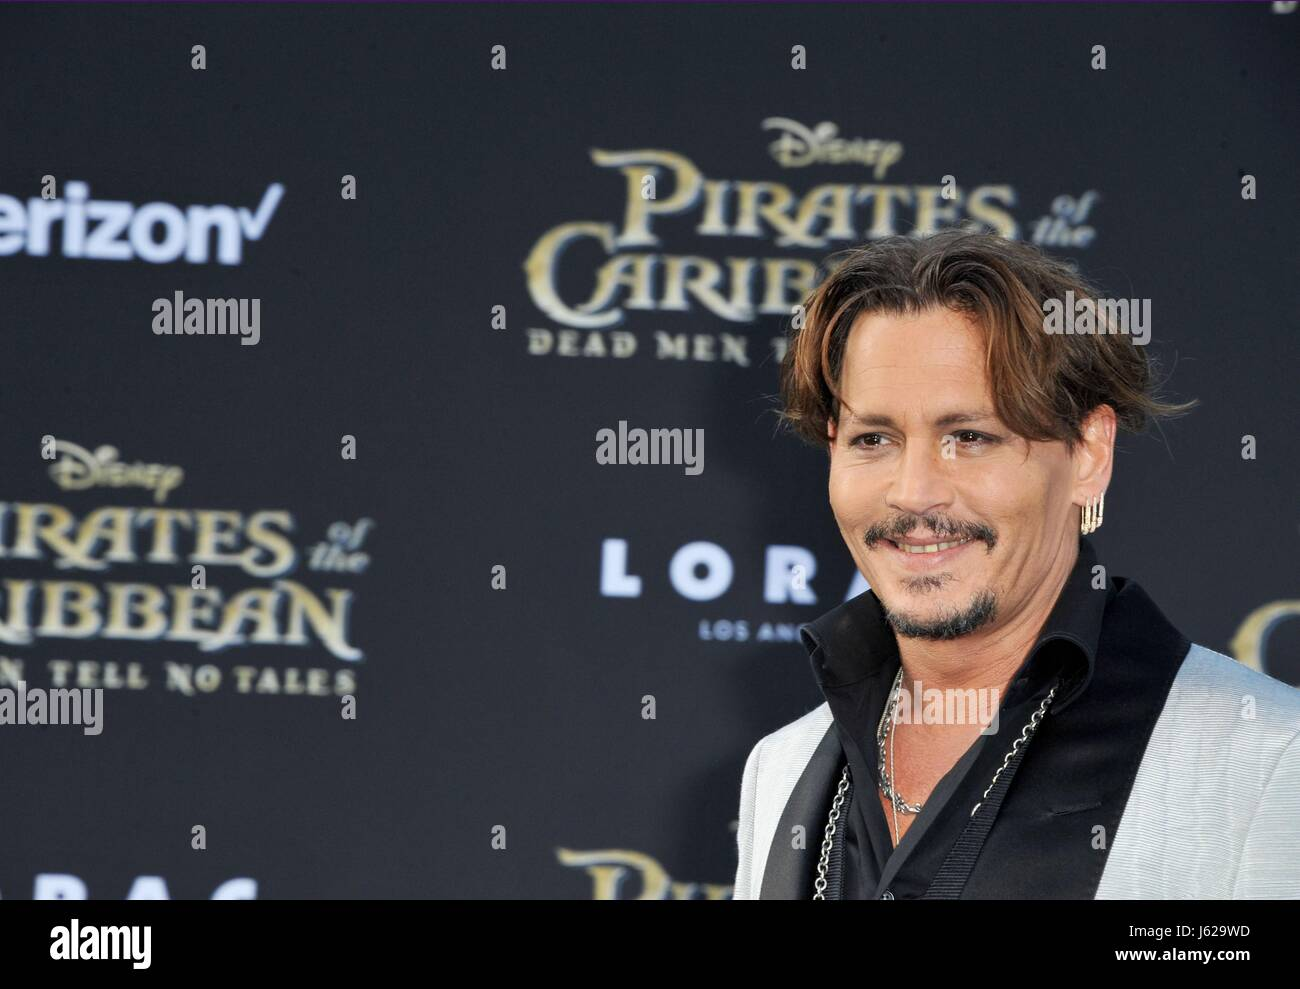 Los Angeles, CA, USA. 18th May, 2017. Johnny Depp at arrivals for PIRATES OF THE CARIBBEAN: DEAD MEN TELL NO TALES - Stock Image